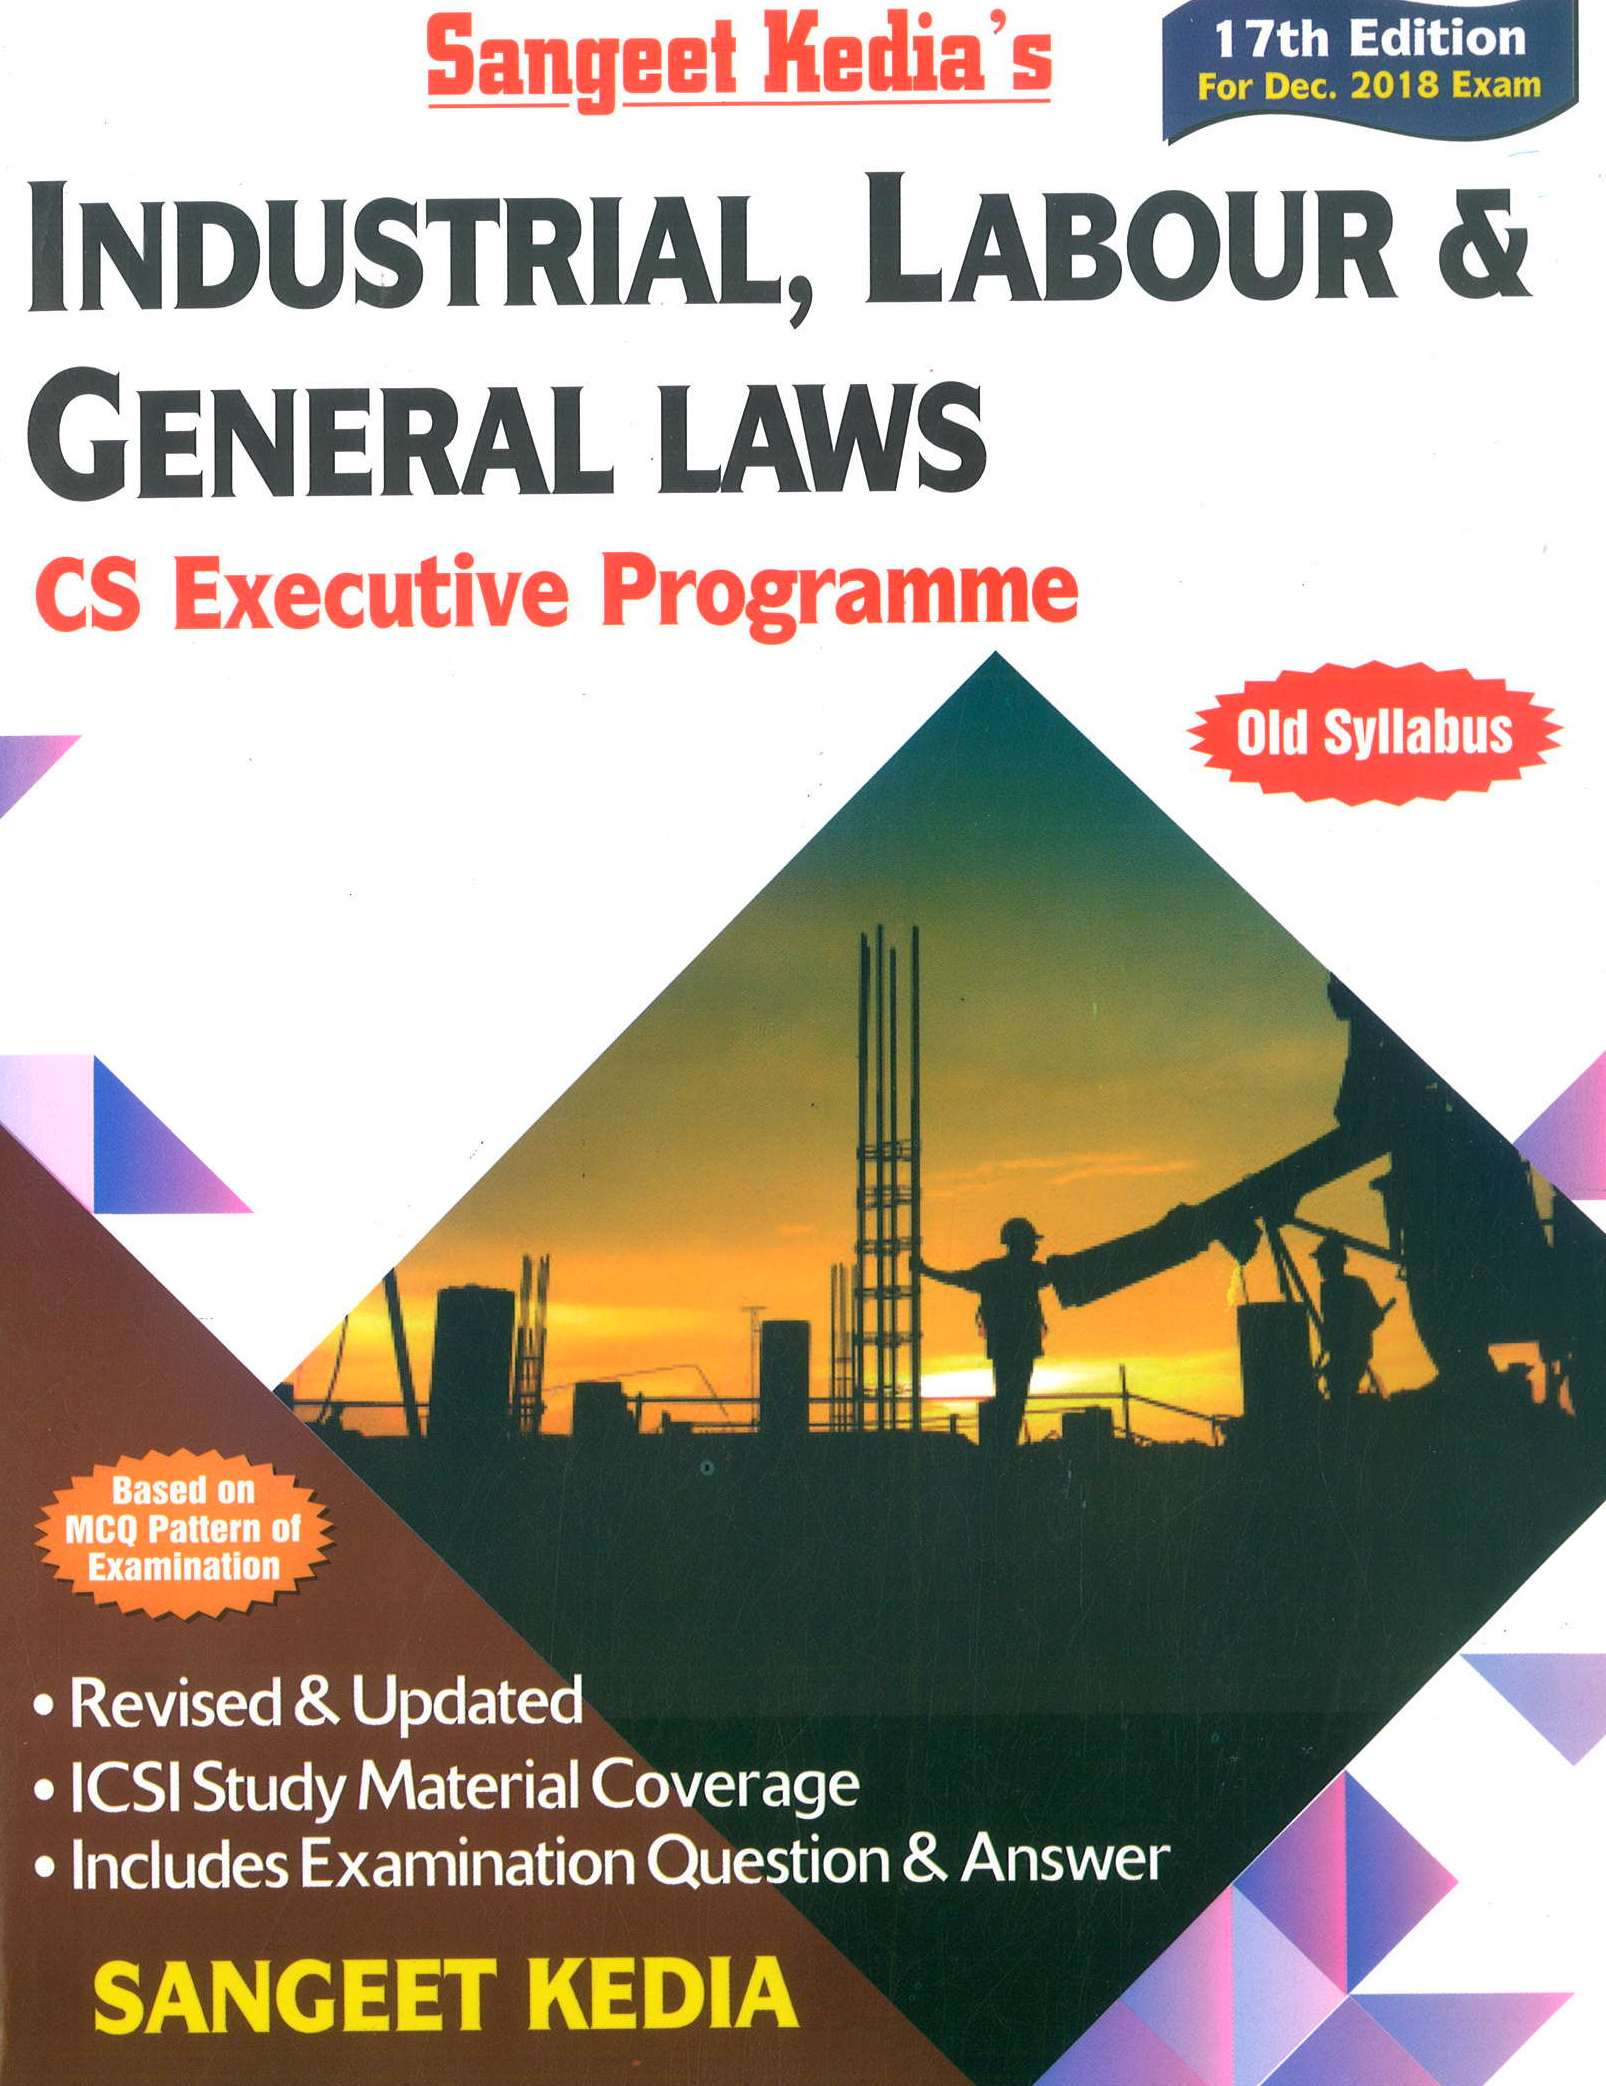 Pooja Law House CS Executive Industrial, Labour & General Law (New Syllabus) By Sangeet Kedia Applicable for Dec 2018 Exam (Pooja Law House Publishing) Edition 17th, 2018